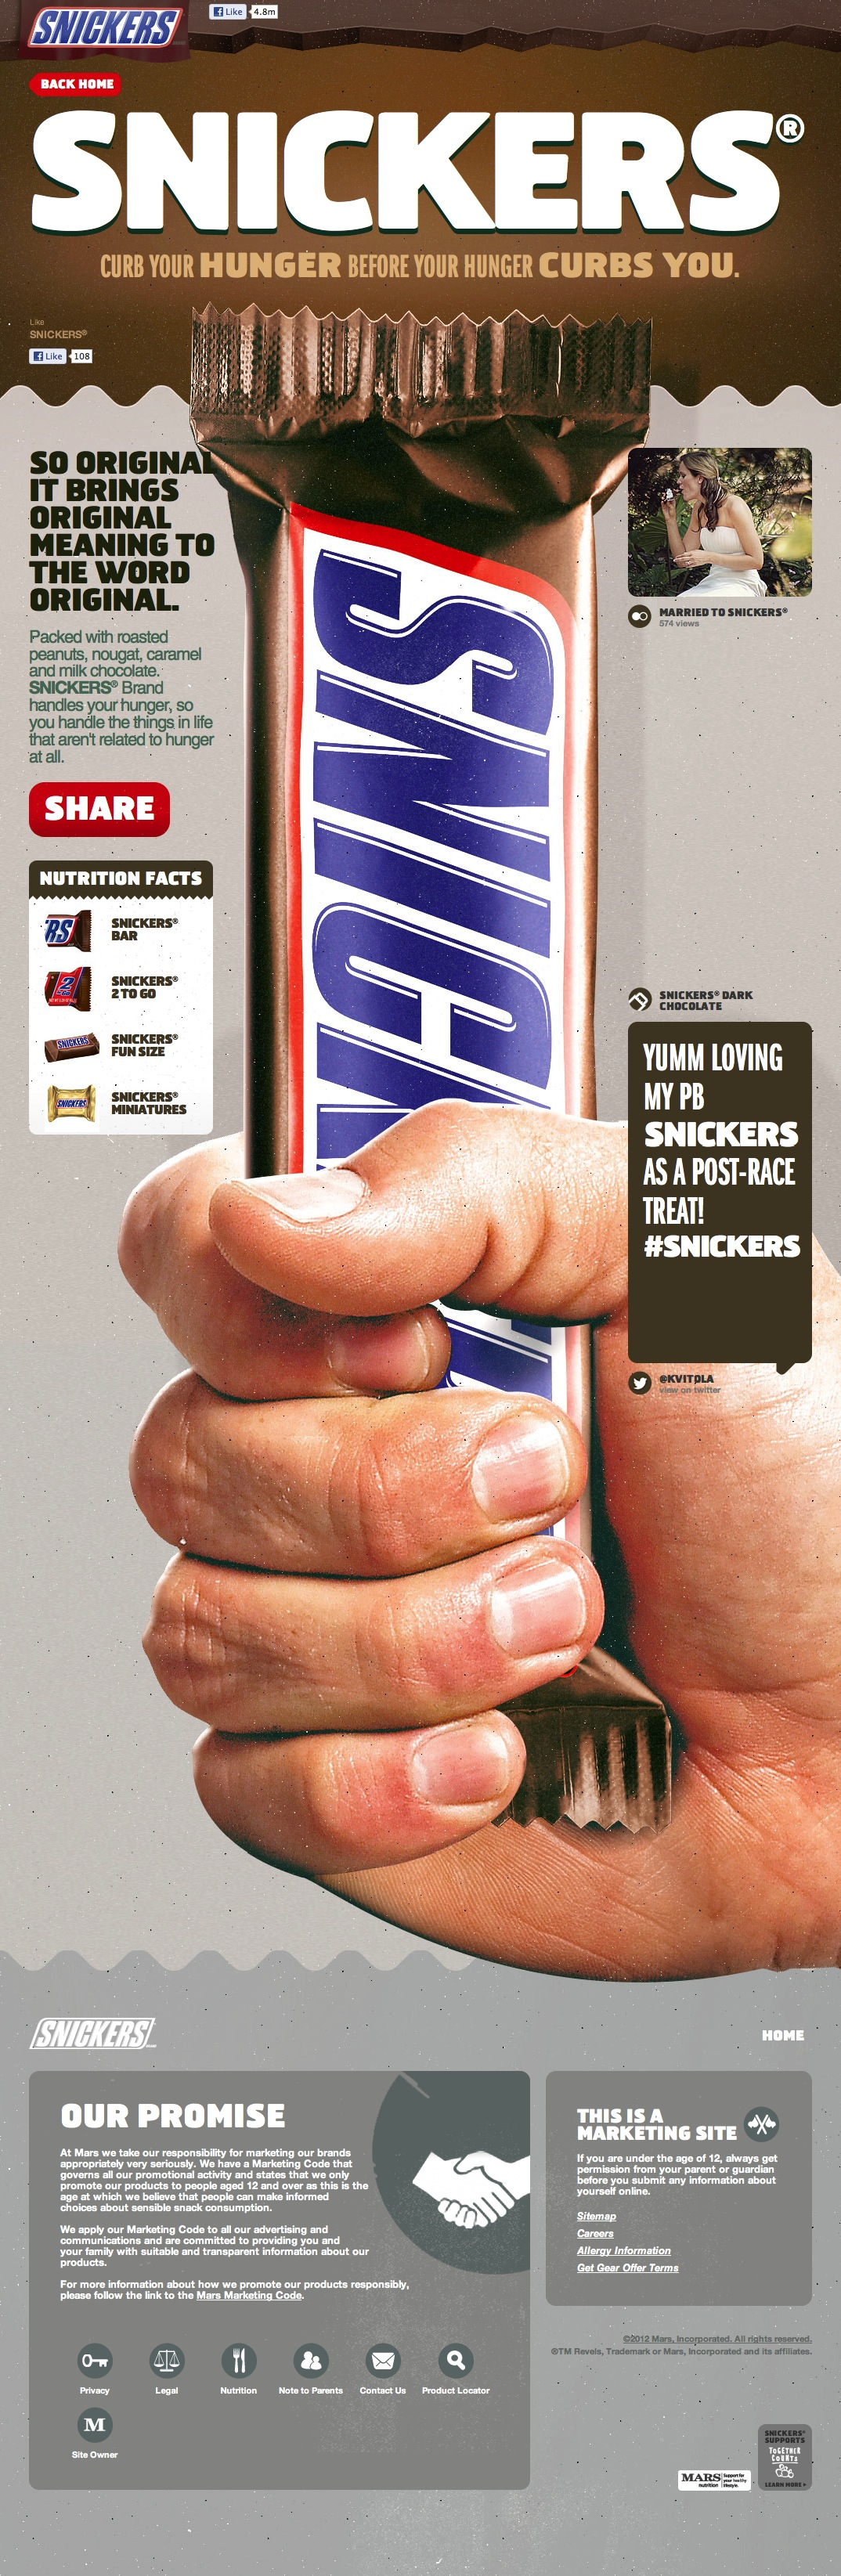 http://www.snickers.com/Product/Snickers